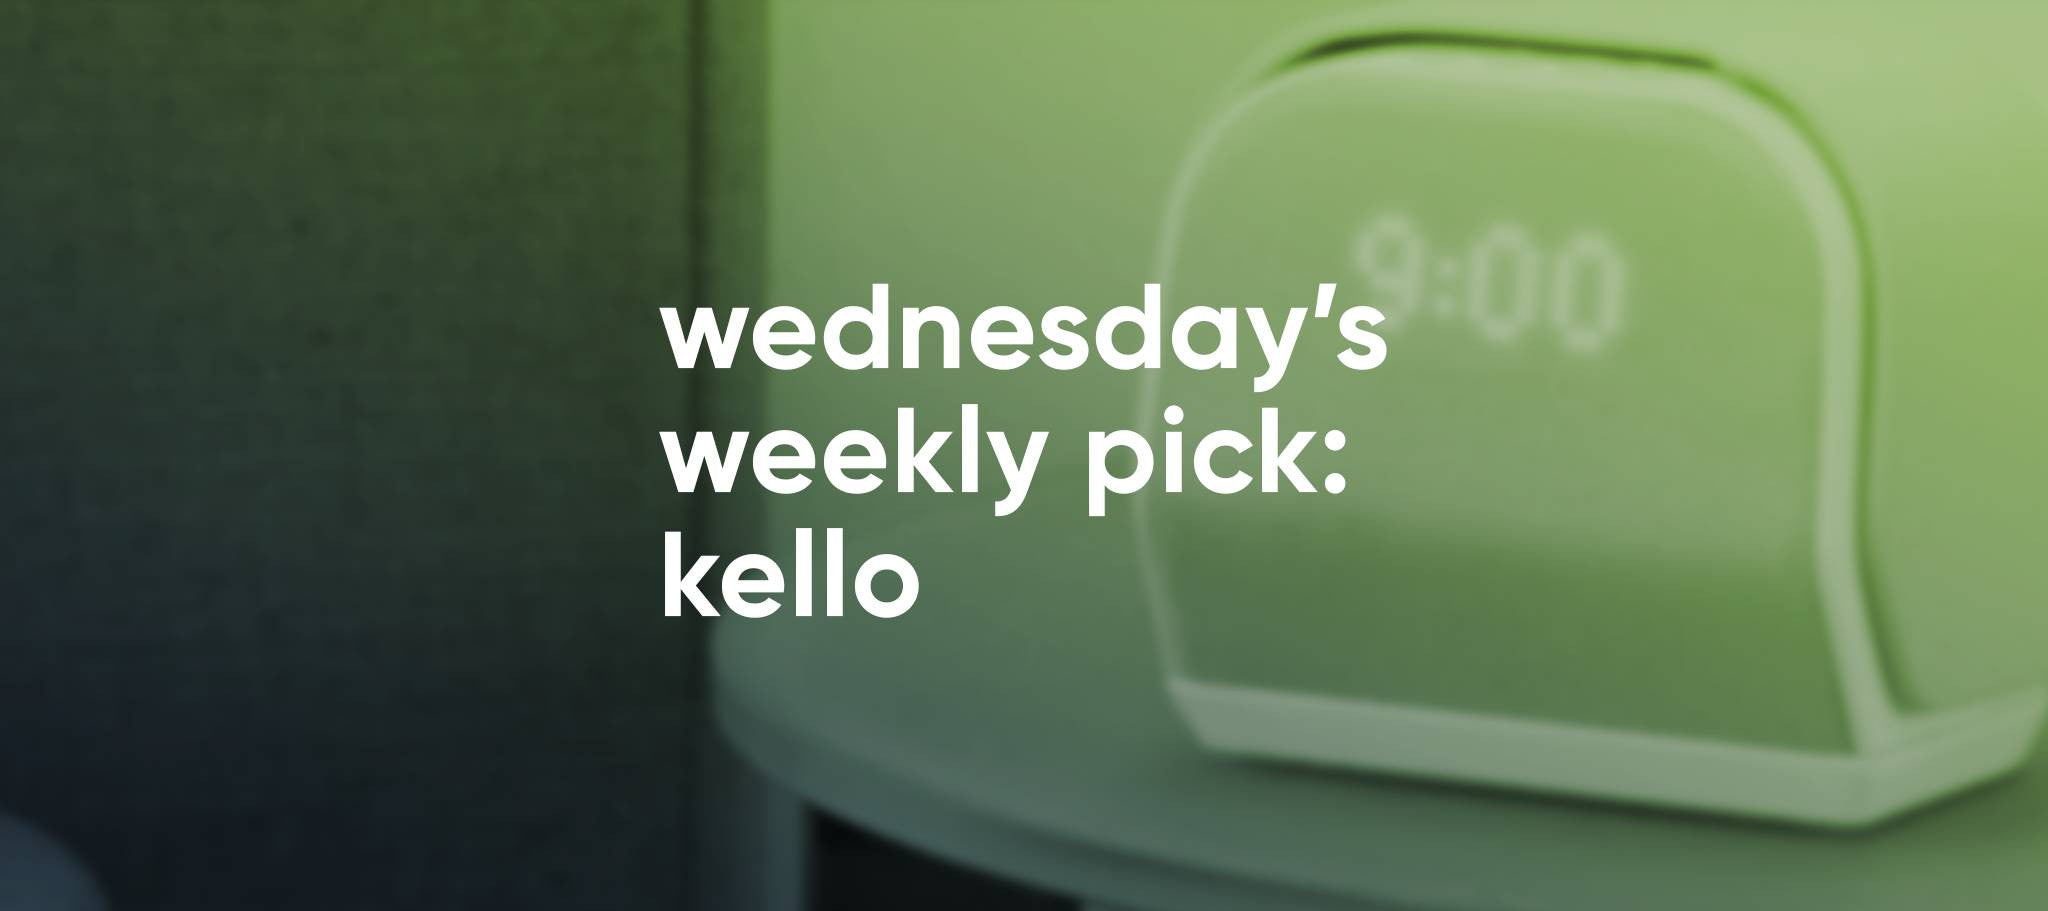 wednesday's weekly pick: kello